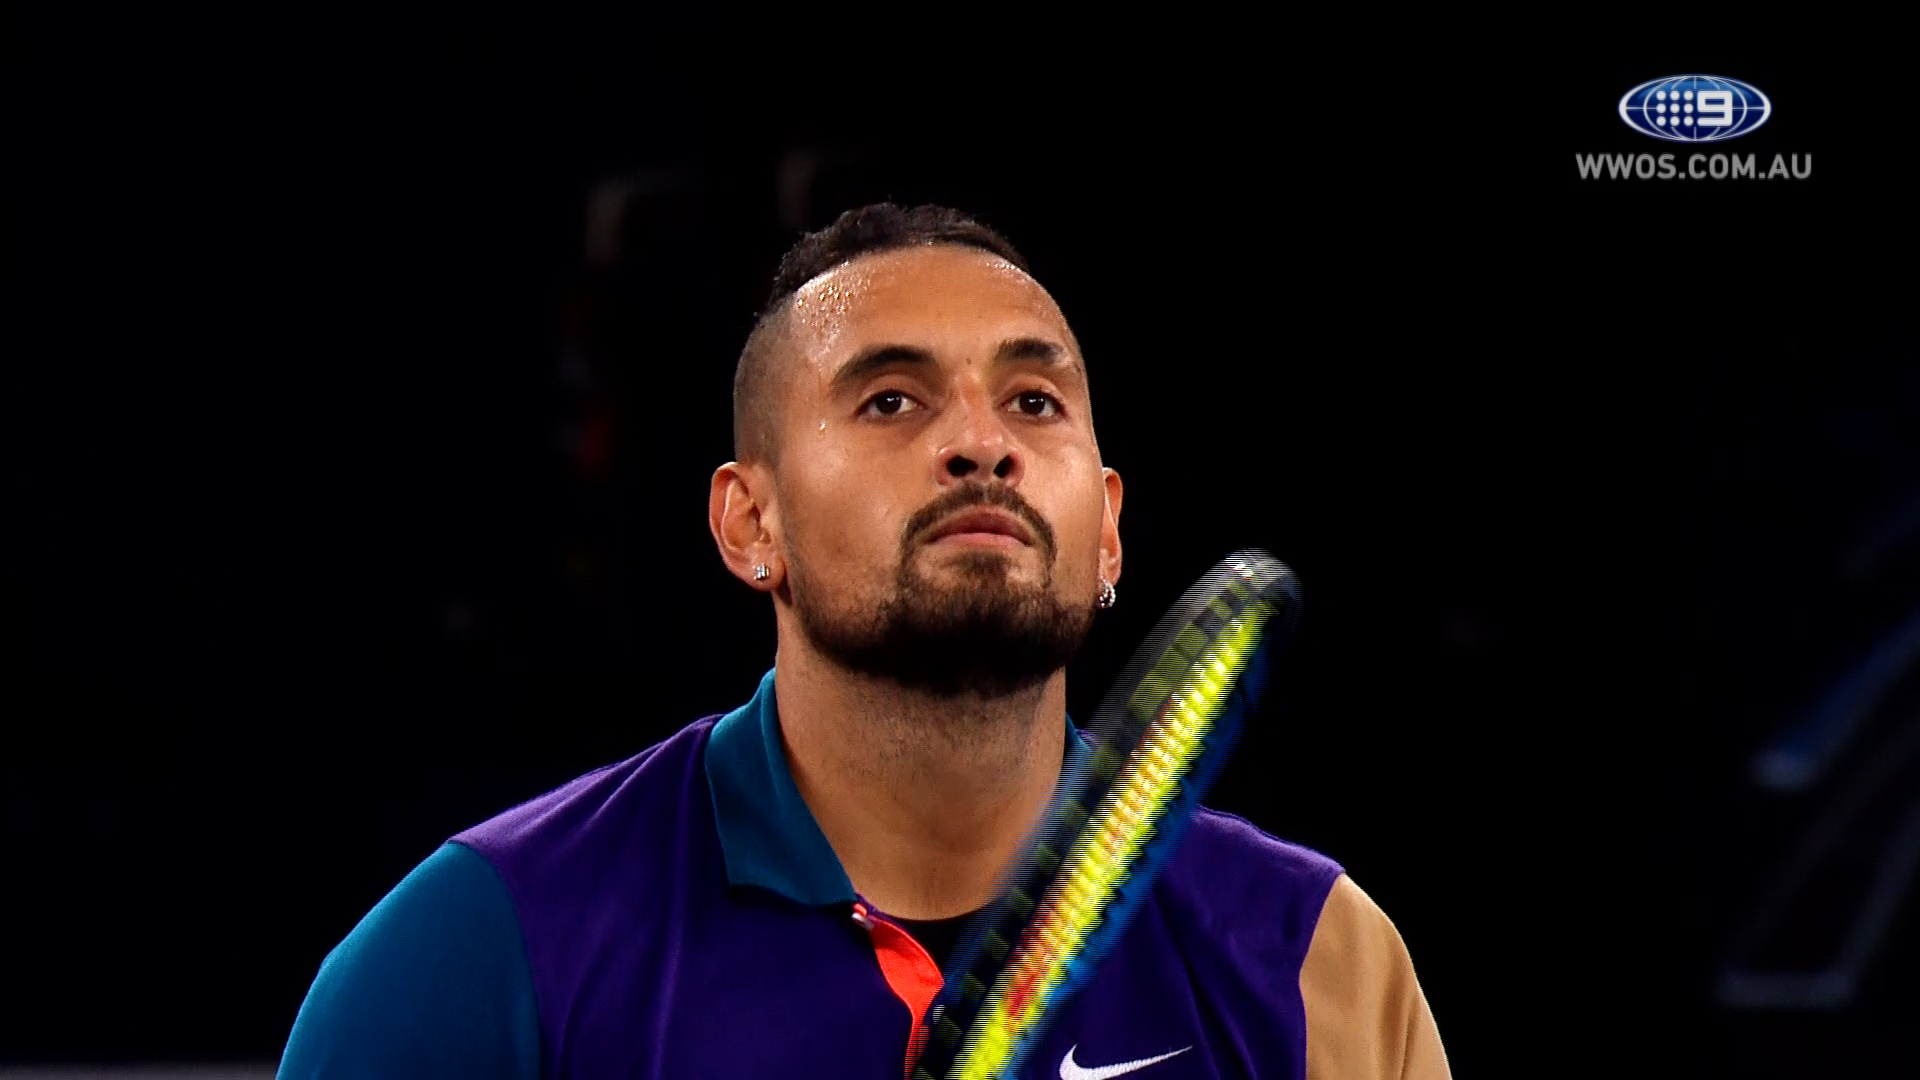 Nick Kyrgios lit up the 2021 Australian Open